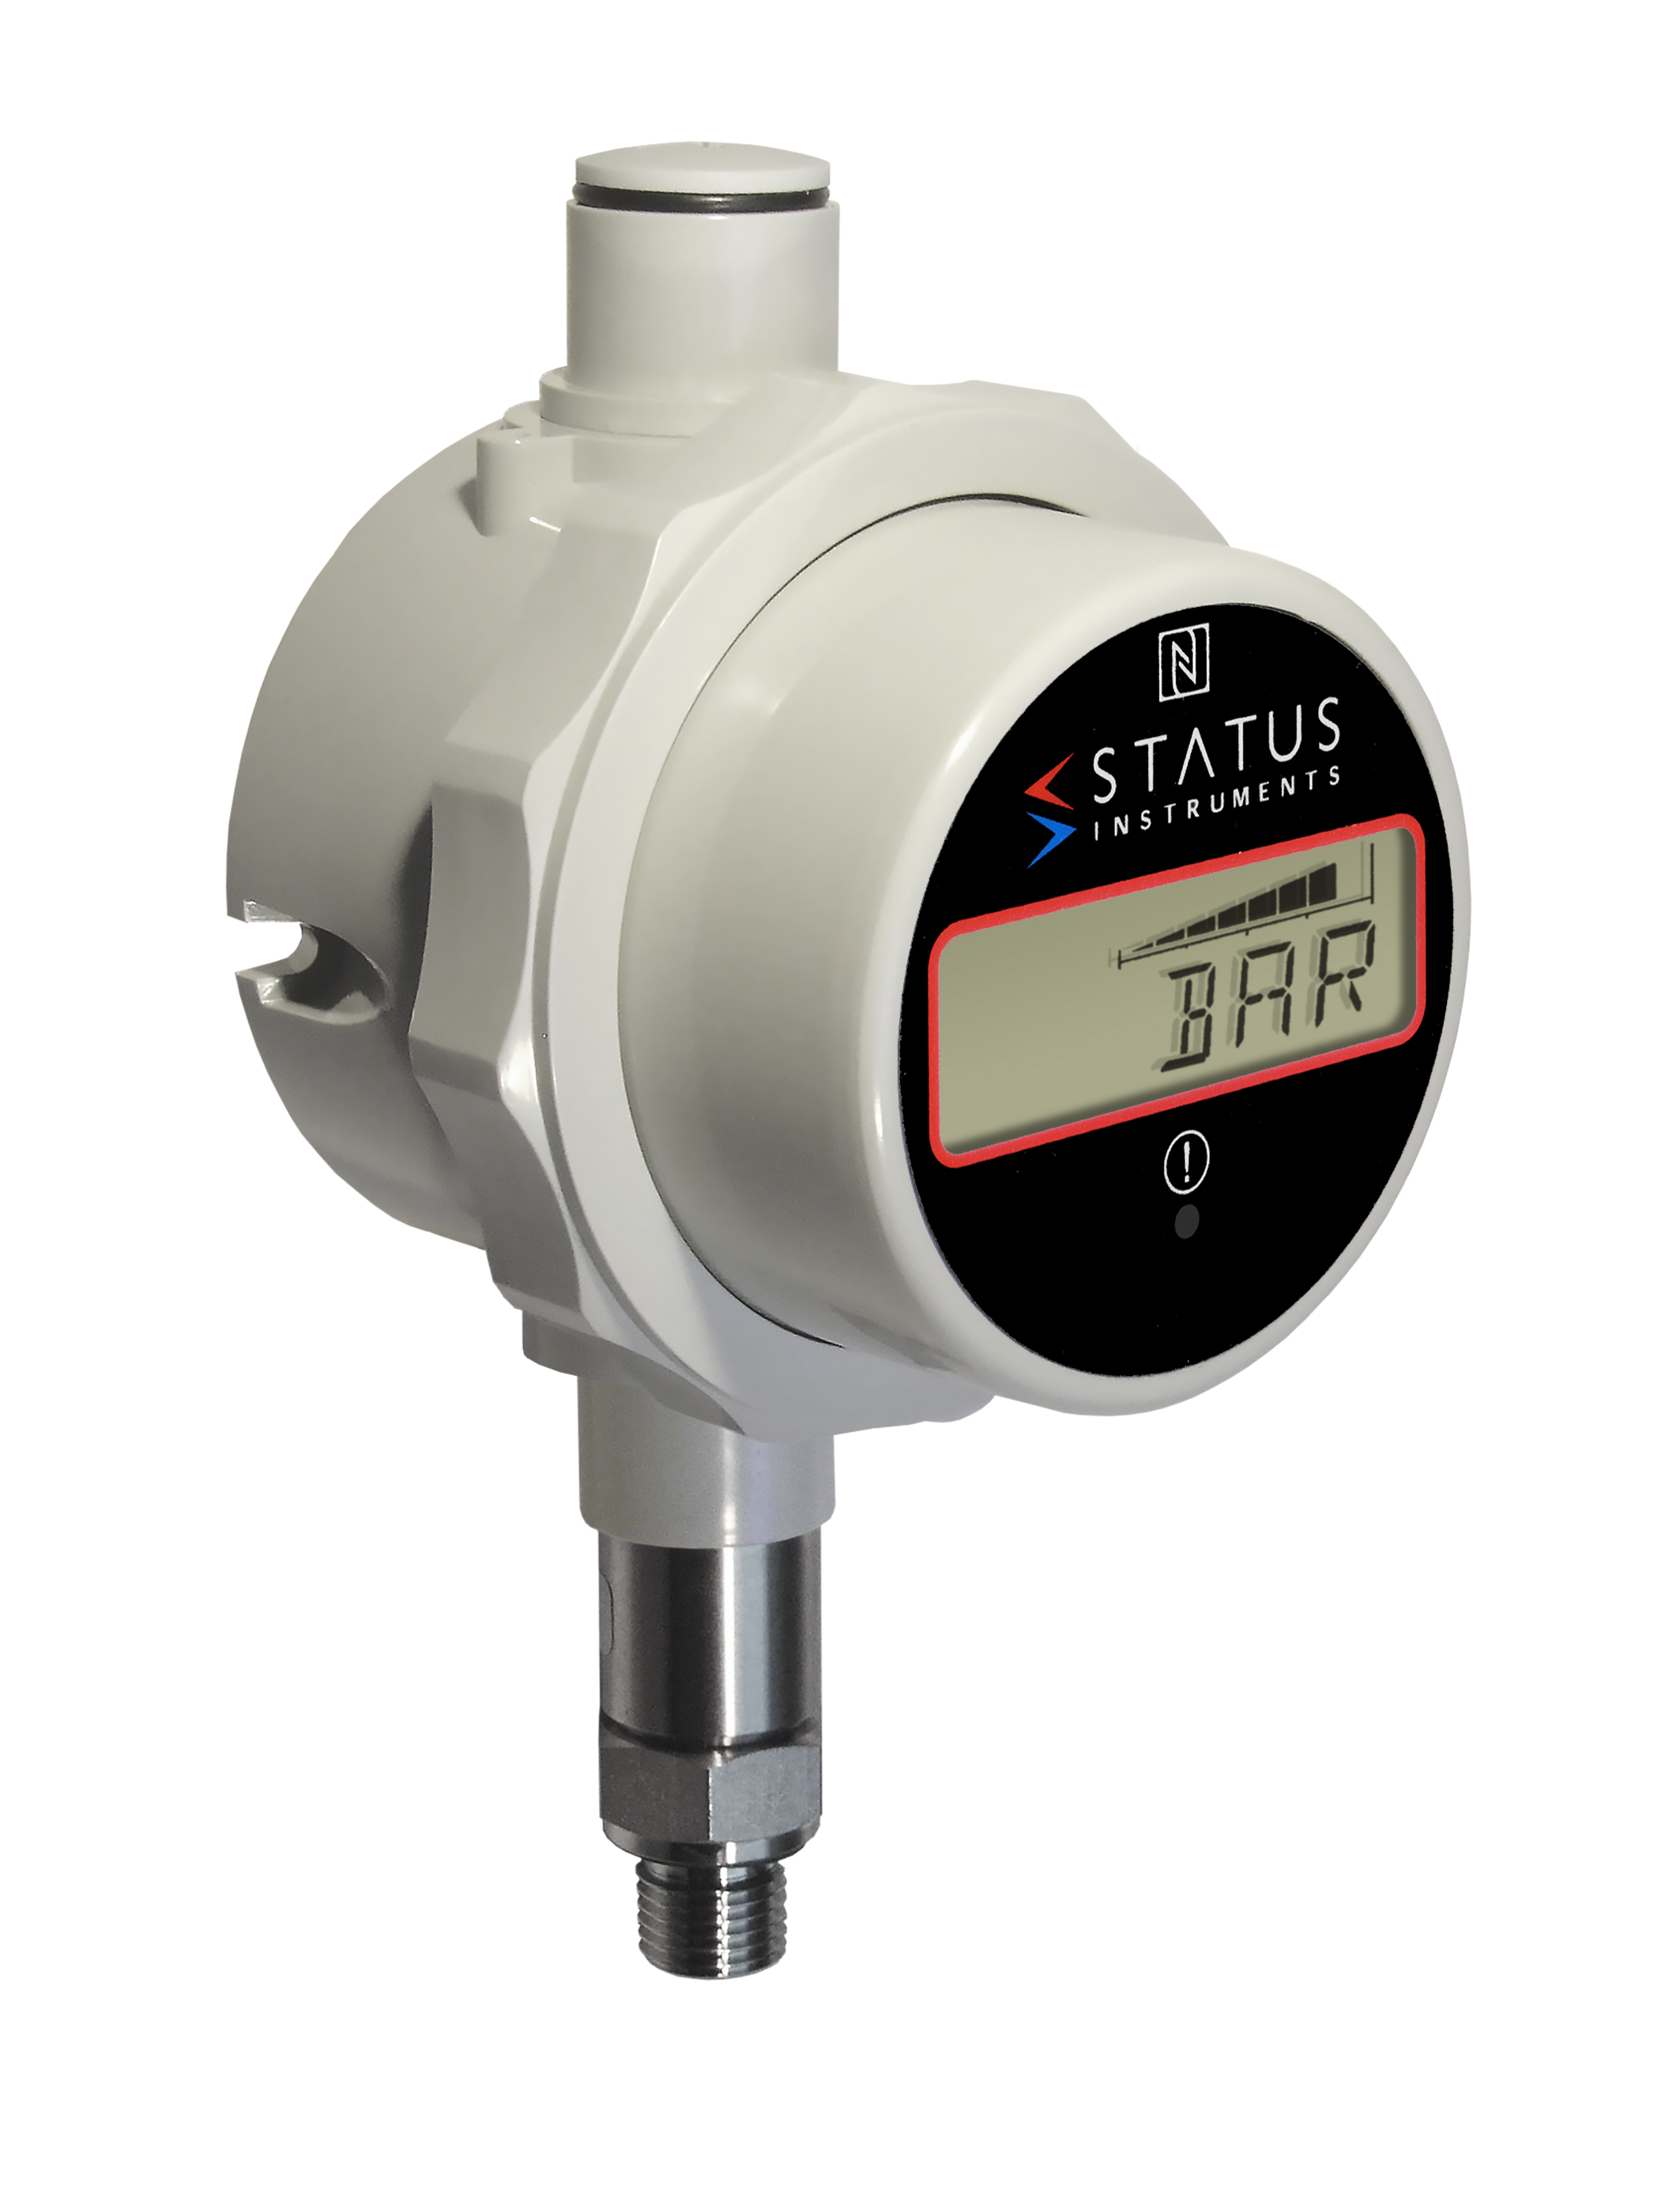 Pressure & Temperature Indicator With Data Logging